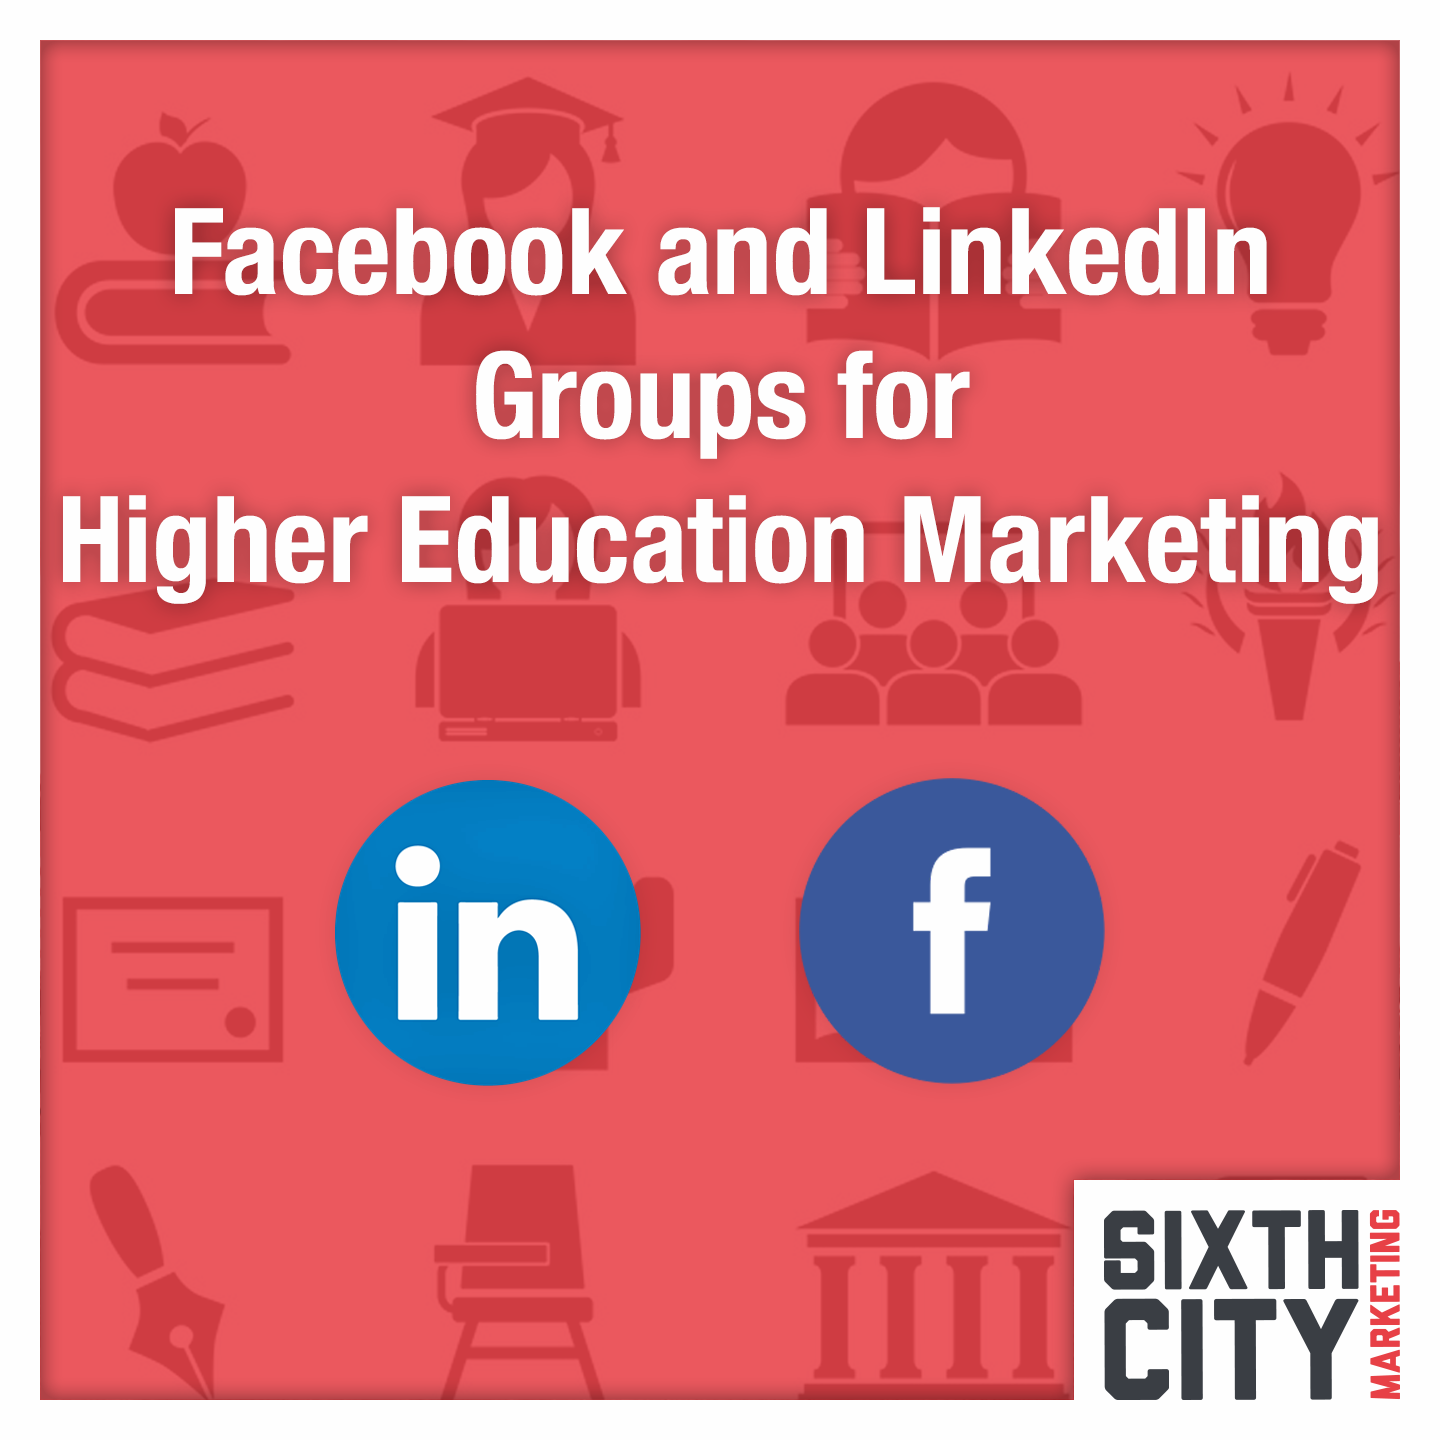 Facebook and LinkedIn Groups for Higher Education Marketing